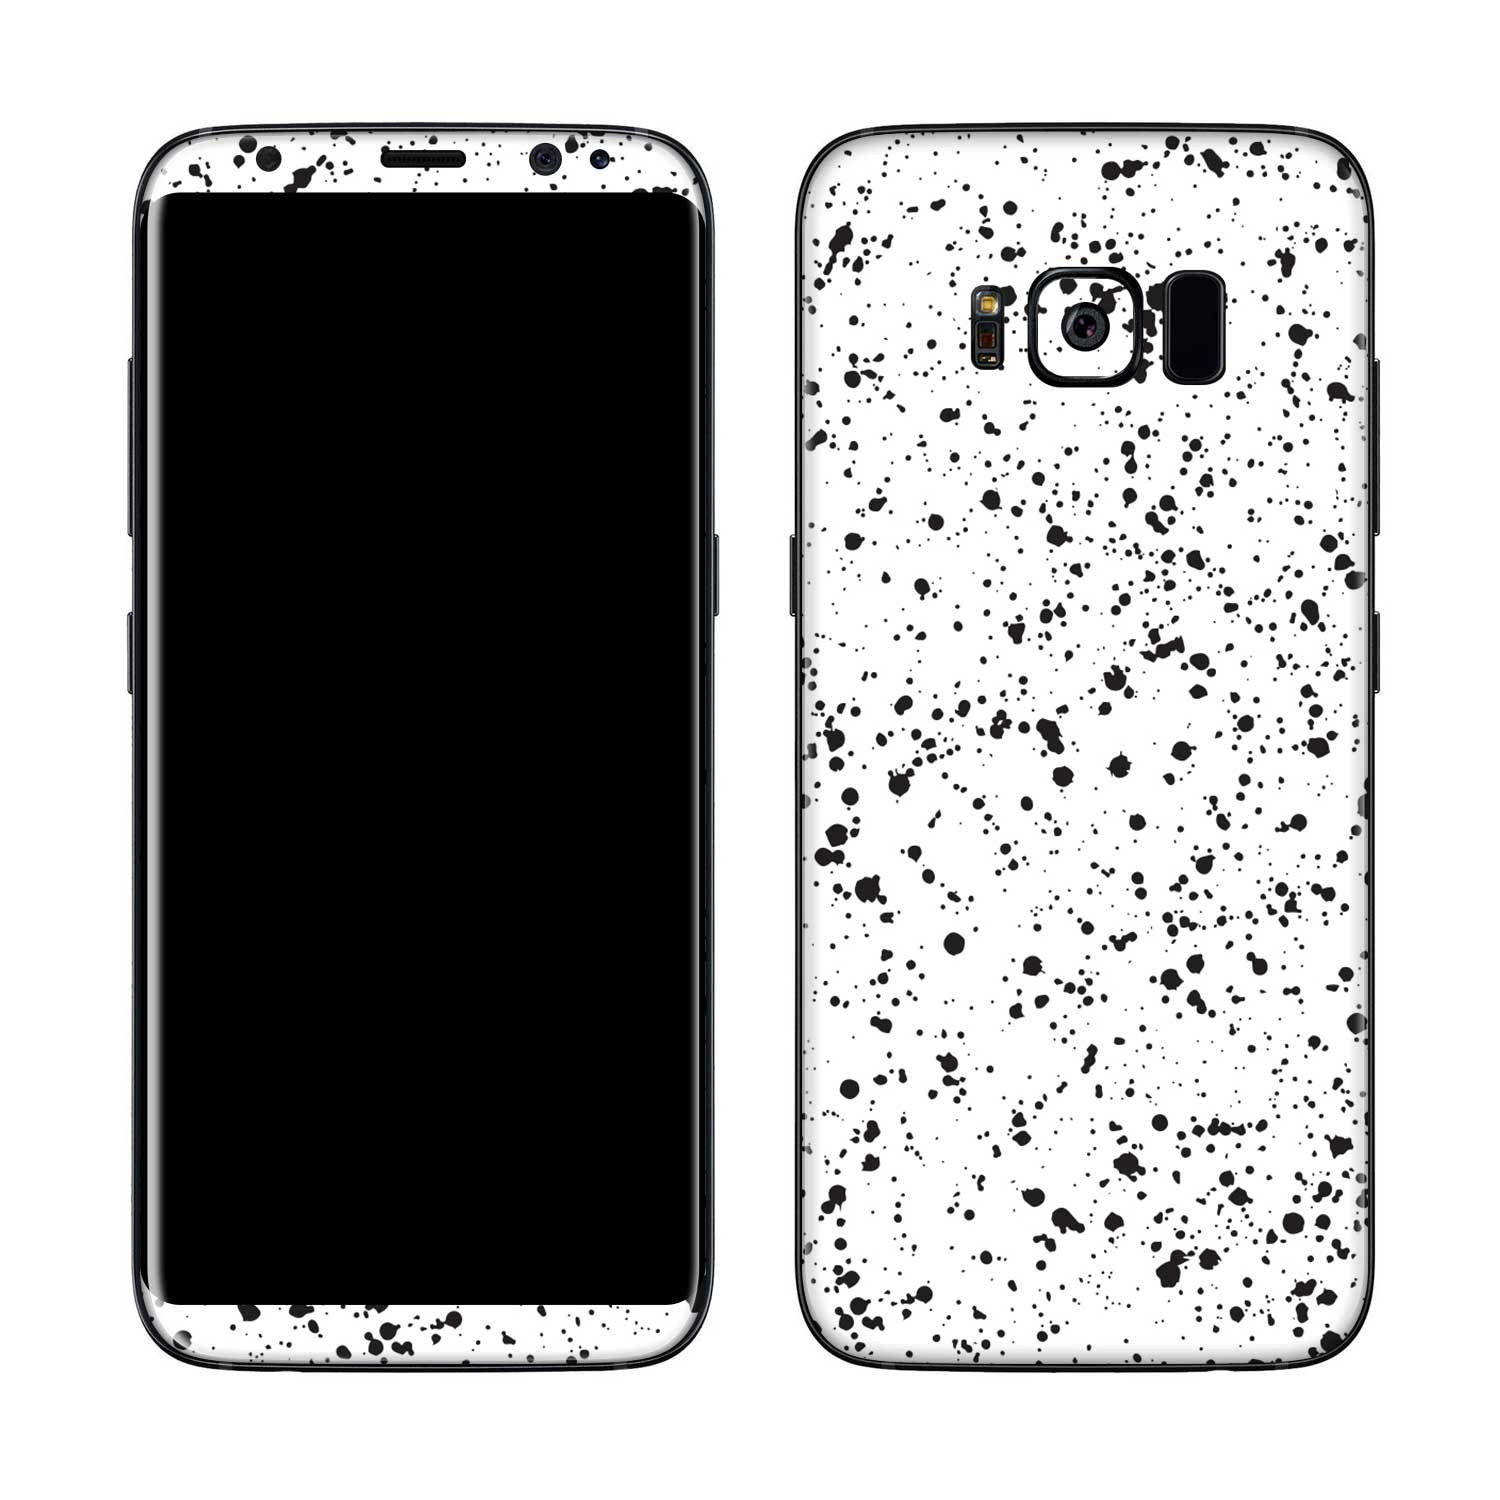 White Speckle Galaxy S8 Plus Skin + Case